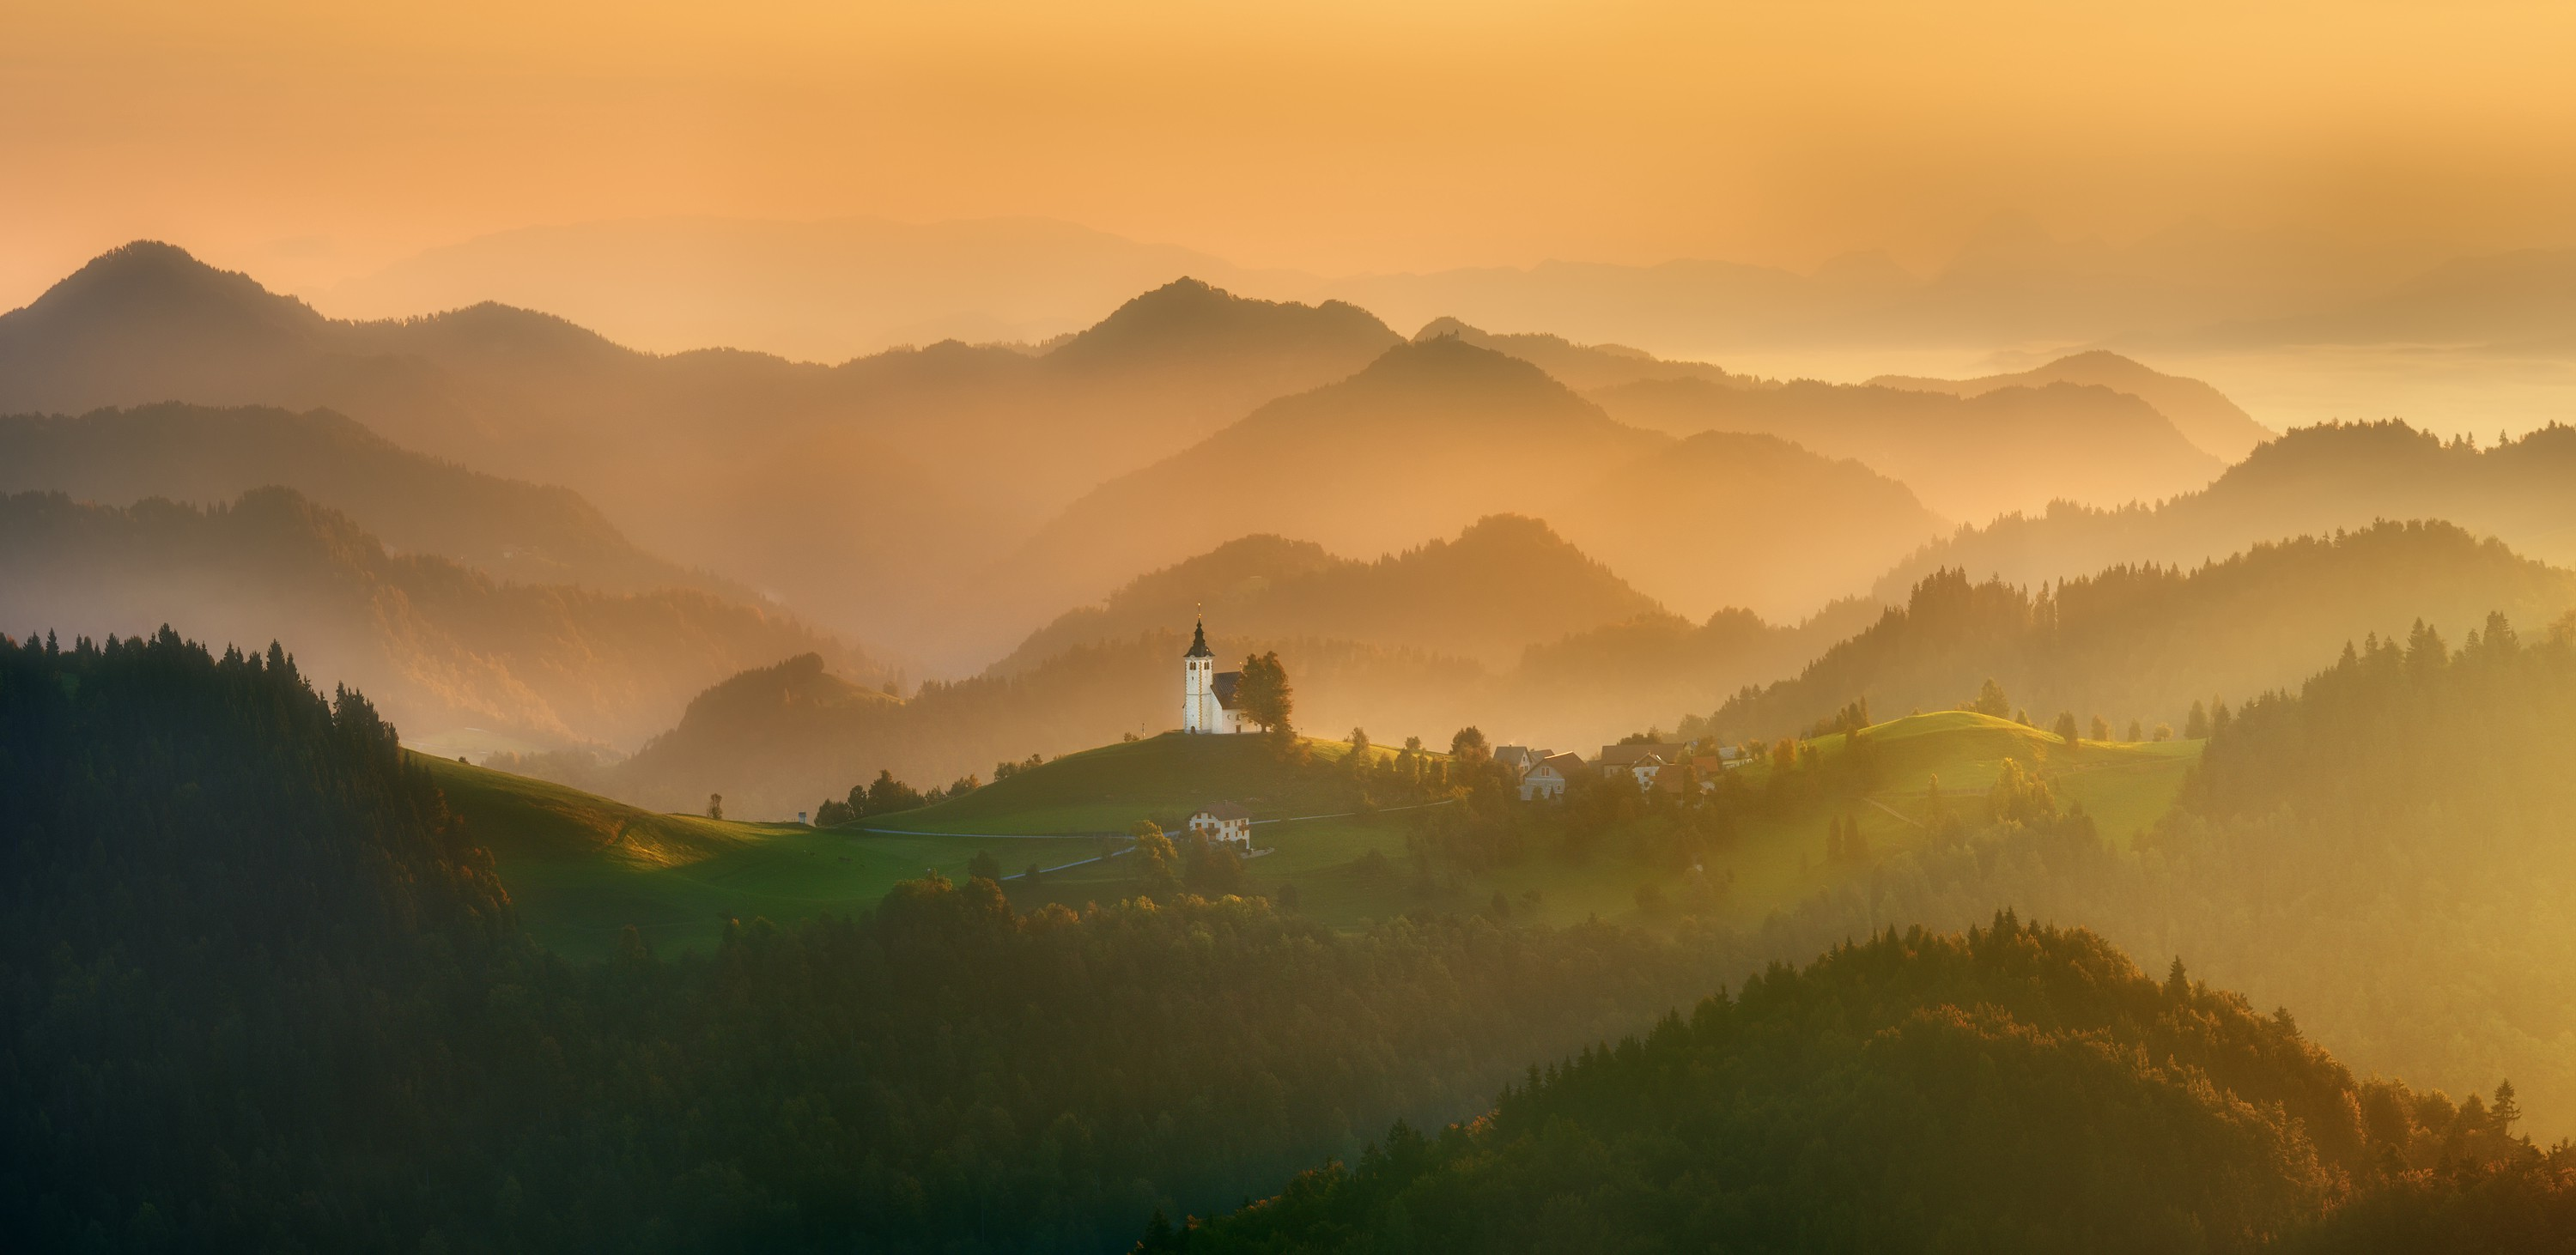 A fine art photograph of a small church which appears backed by golden, yellow light in rolling green hills